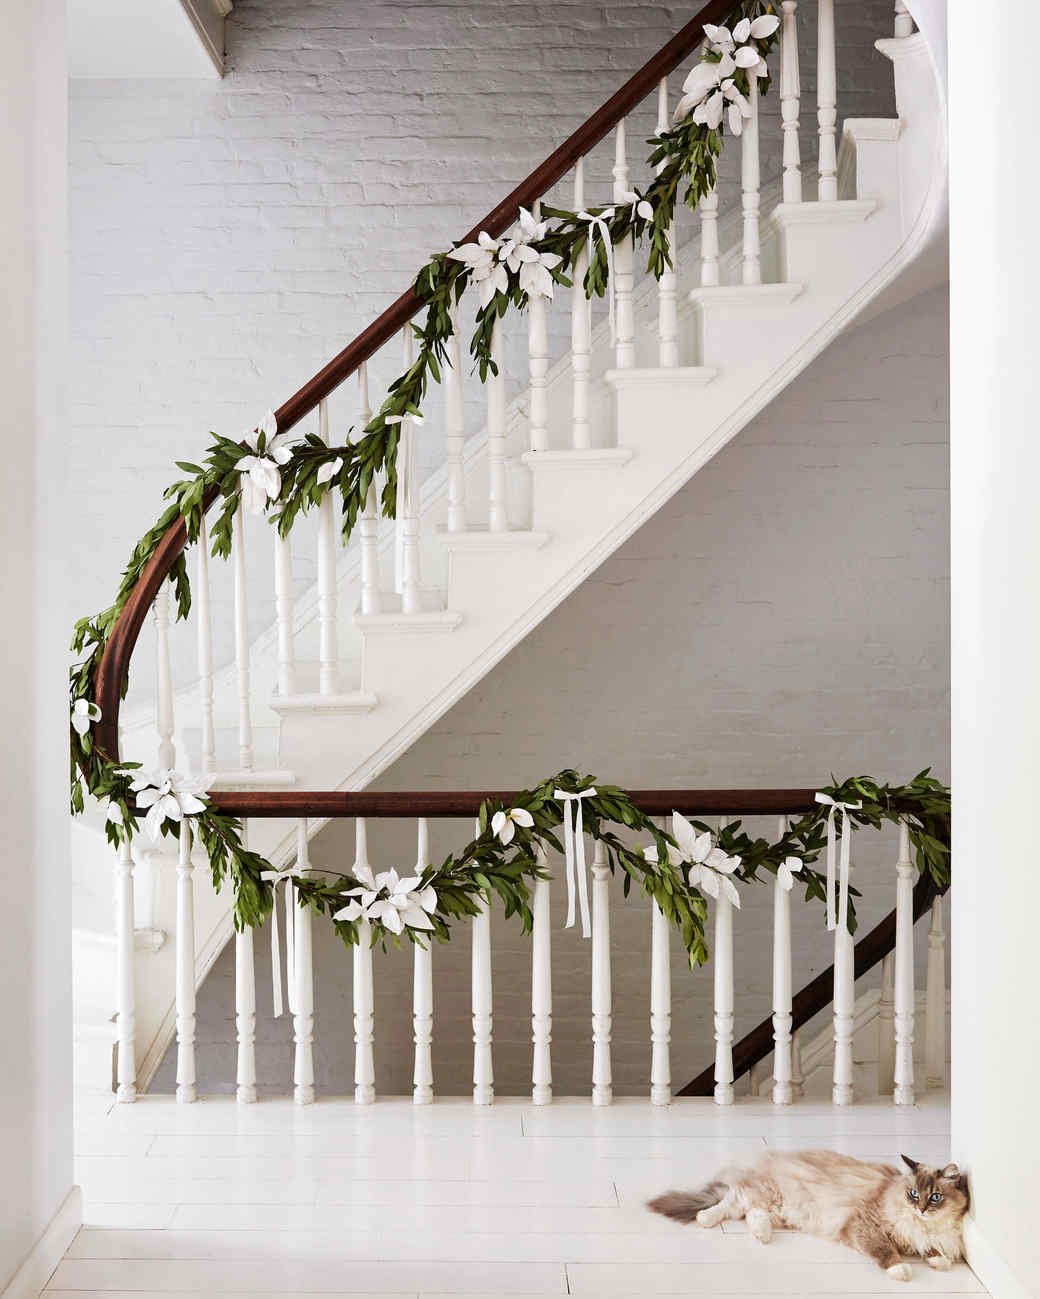 plaster-dipped leaves on a holiday garland